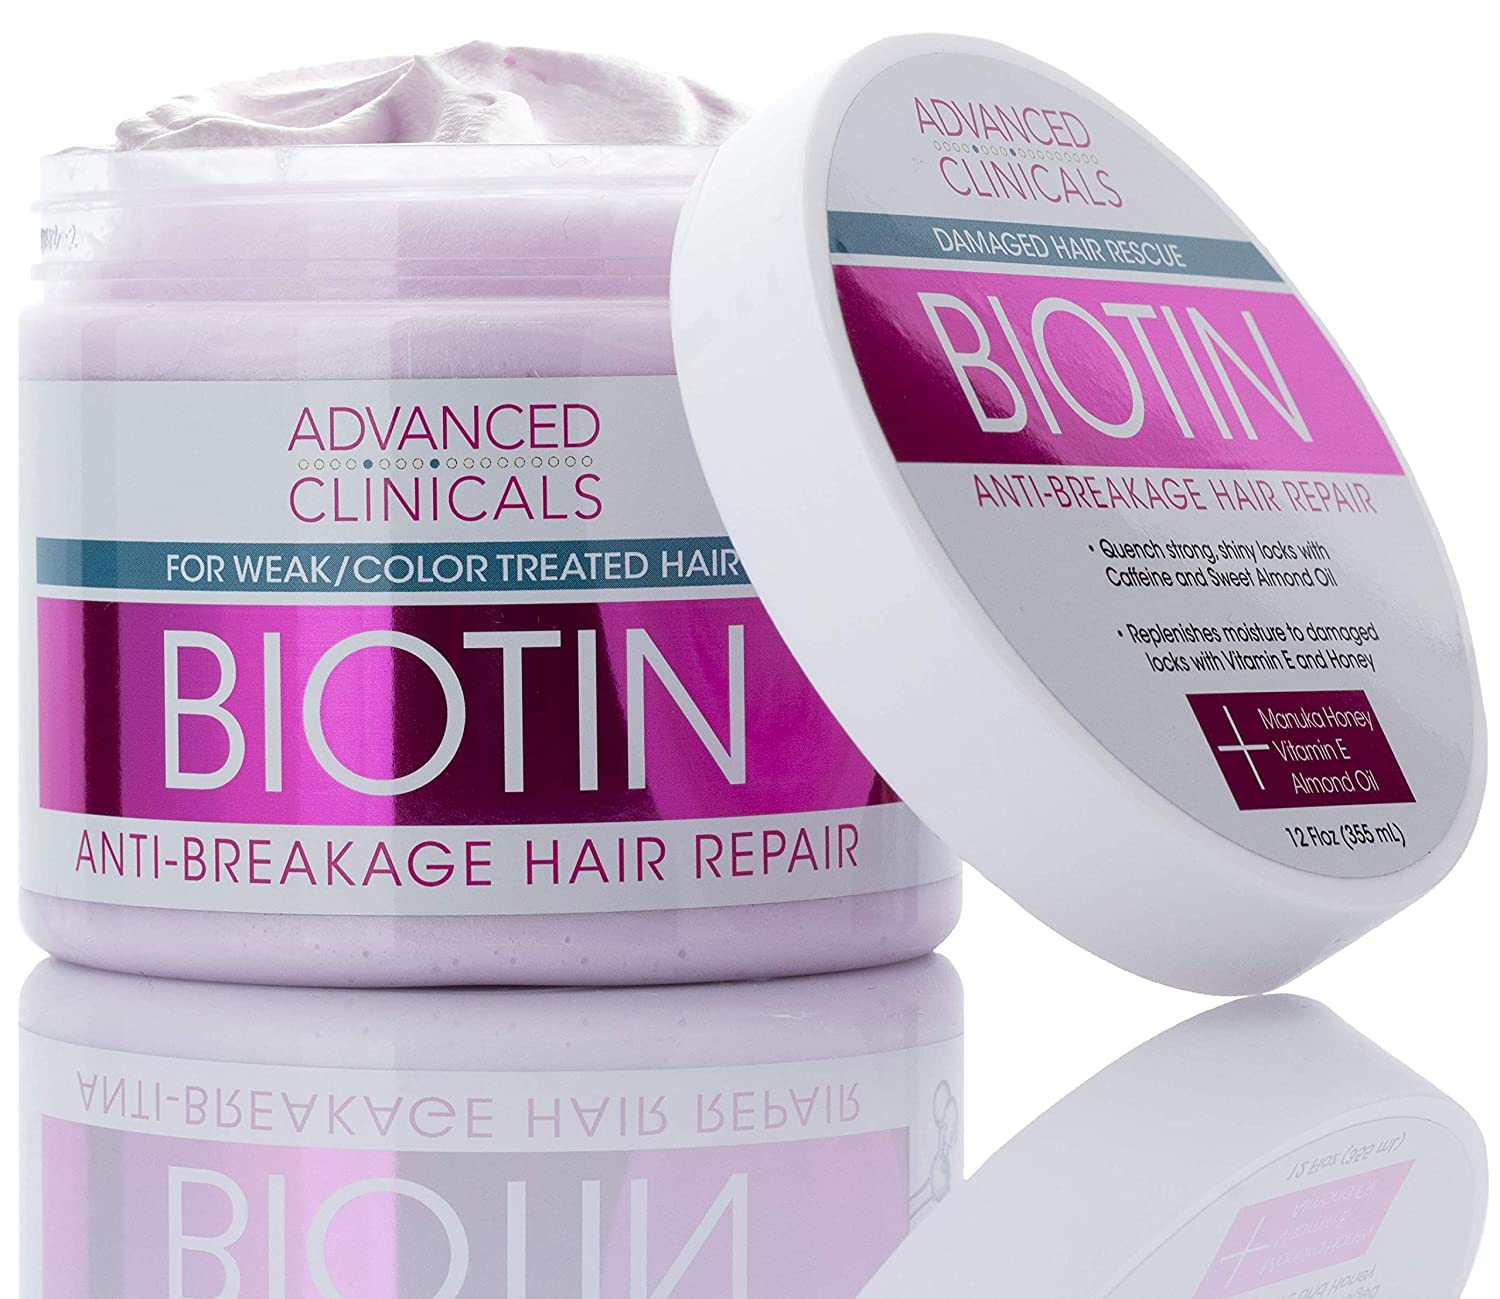 Advanced Clinicals Biotin Anti-Breakage Hair Repair Mask. Strengthen Broken, Color-Treated Hair with Repairing Deep Conditioner Manuka Honey & Caffeine. Hydrating Mask Restores Weak Hair, 12 oz.